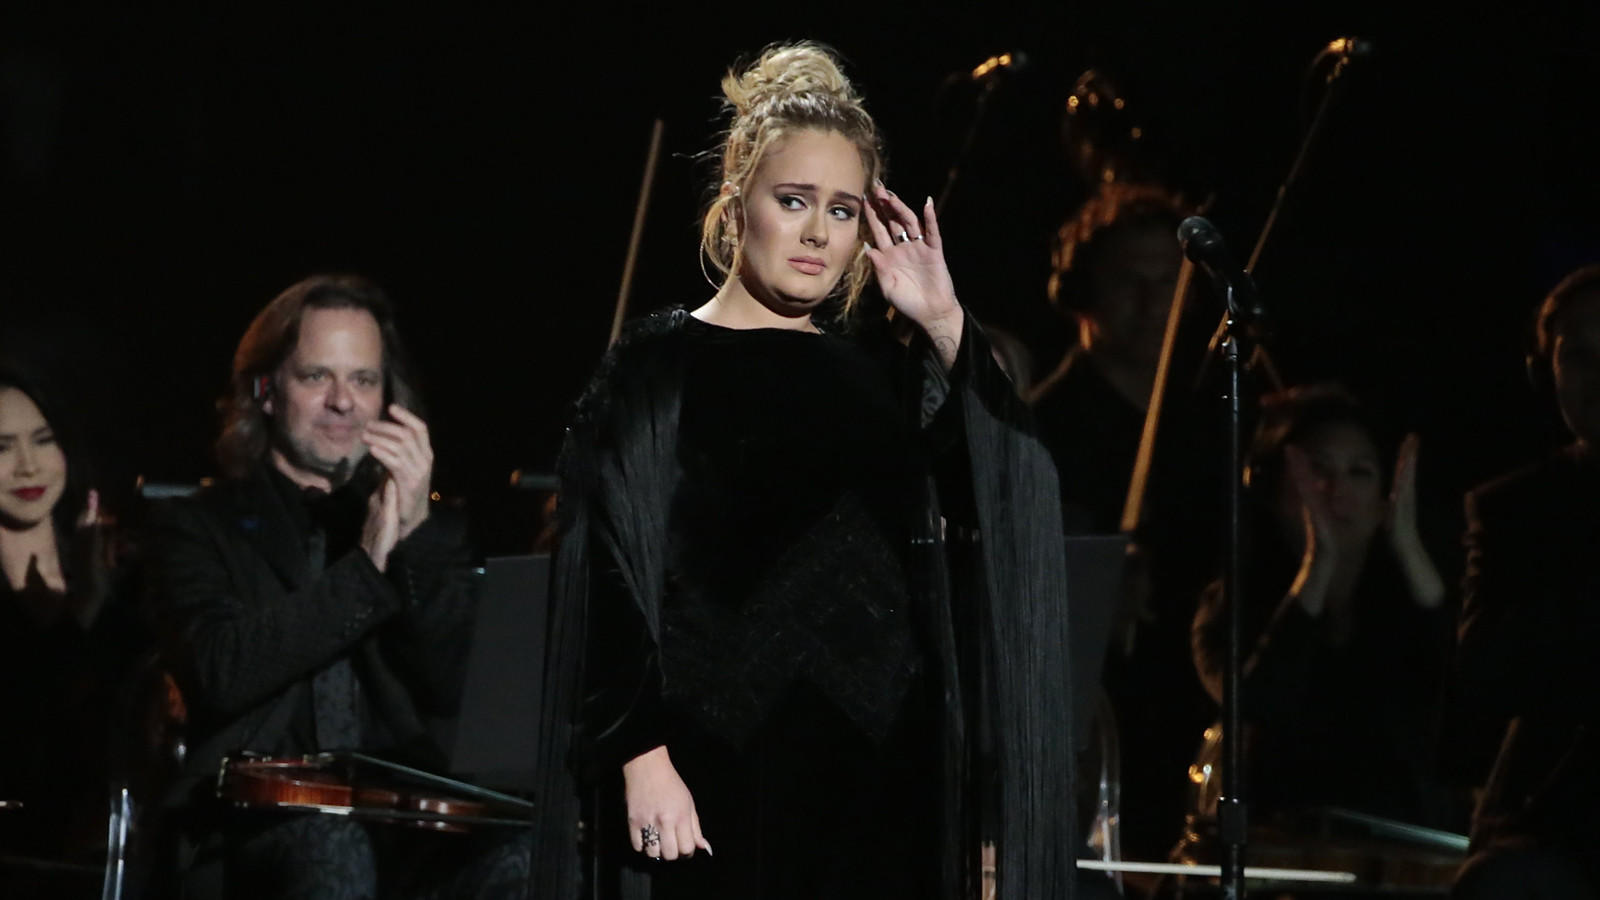 A distraught Adele is shown. (Robert Gauthier / Los Angeles Times)